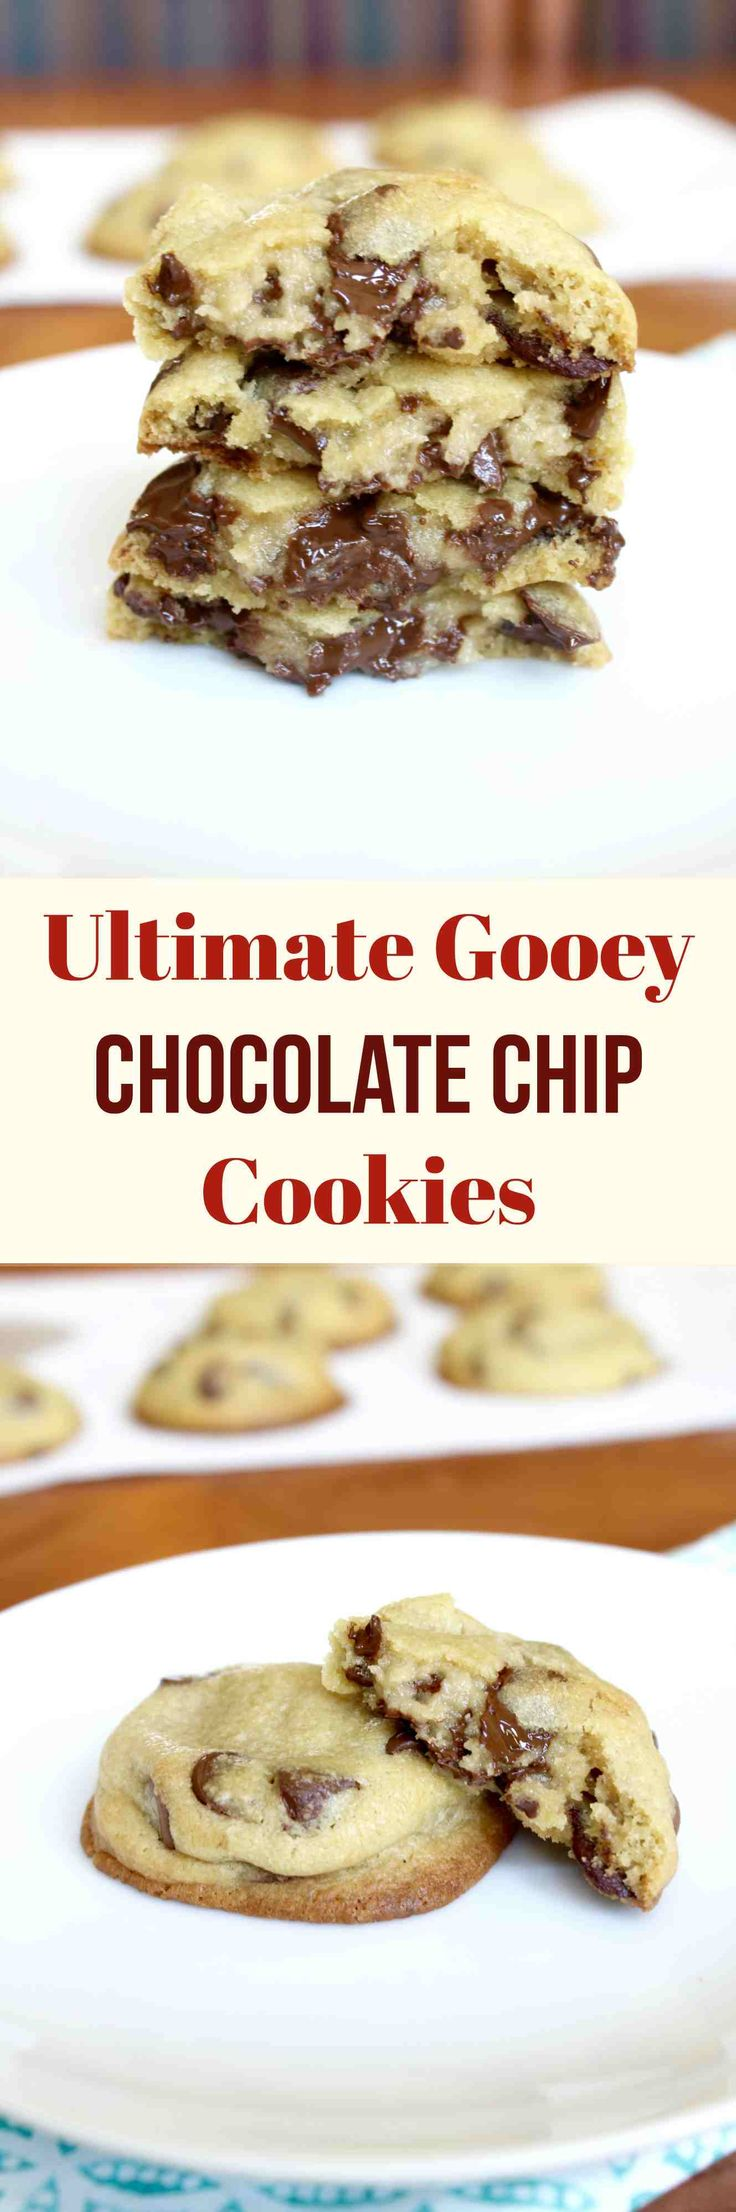 The gooiest chocolate chip cookies ever! Chocolate chip cookies stuffed with eggless chocolate chip cookie dough!